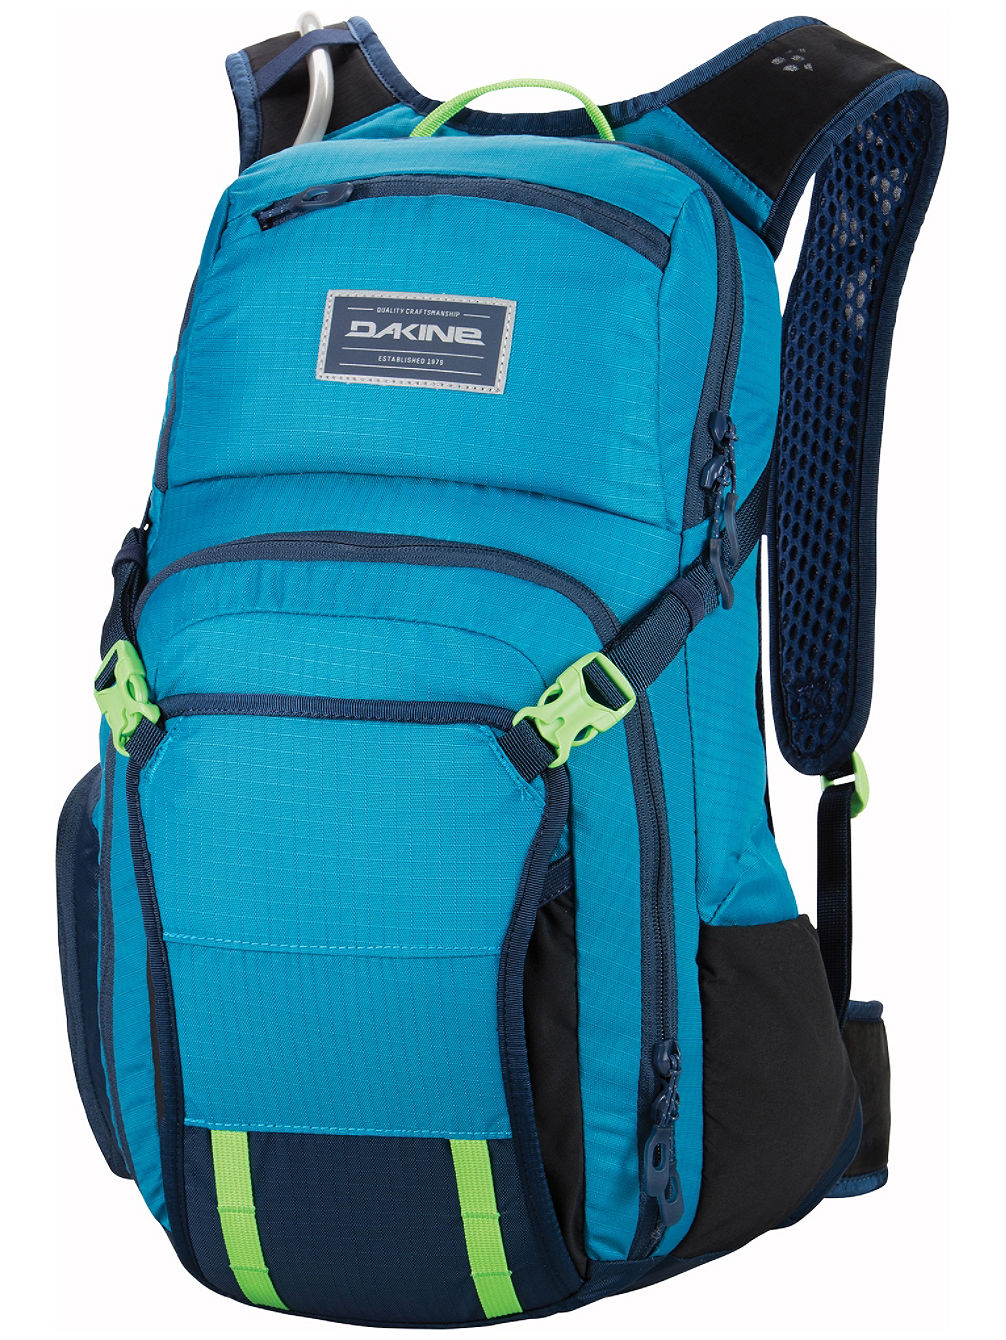 Drafter 14L Backpack